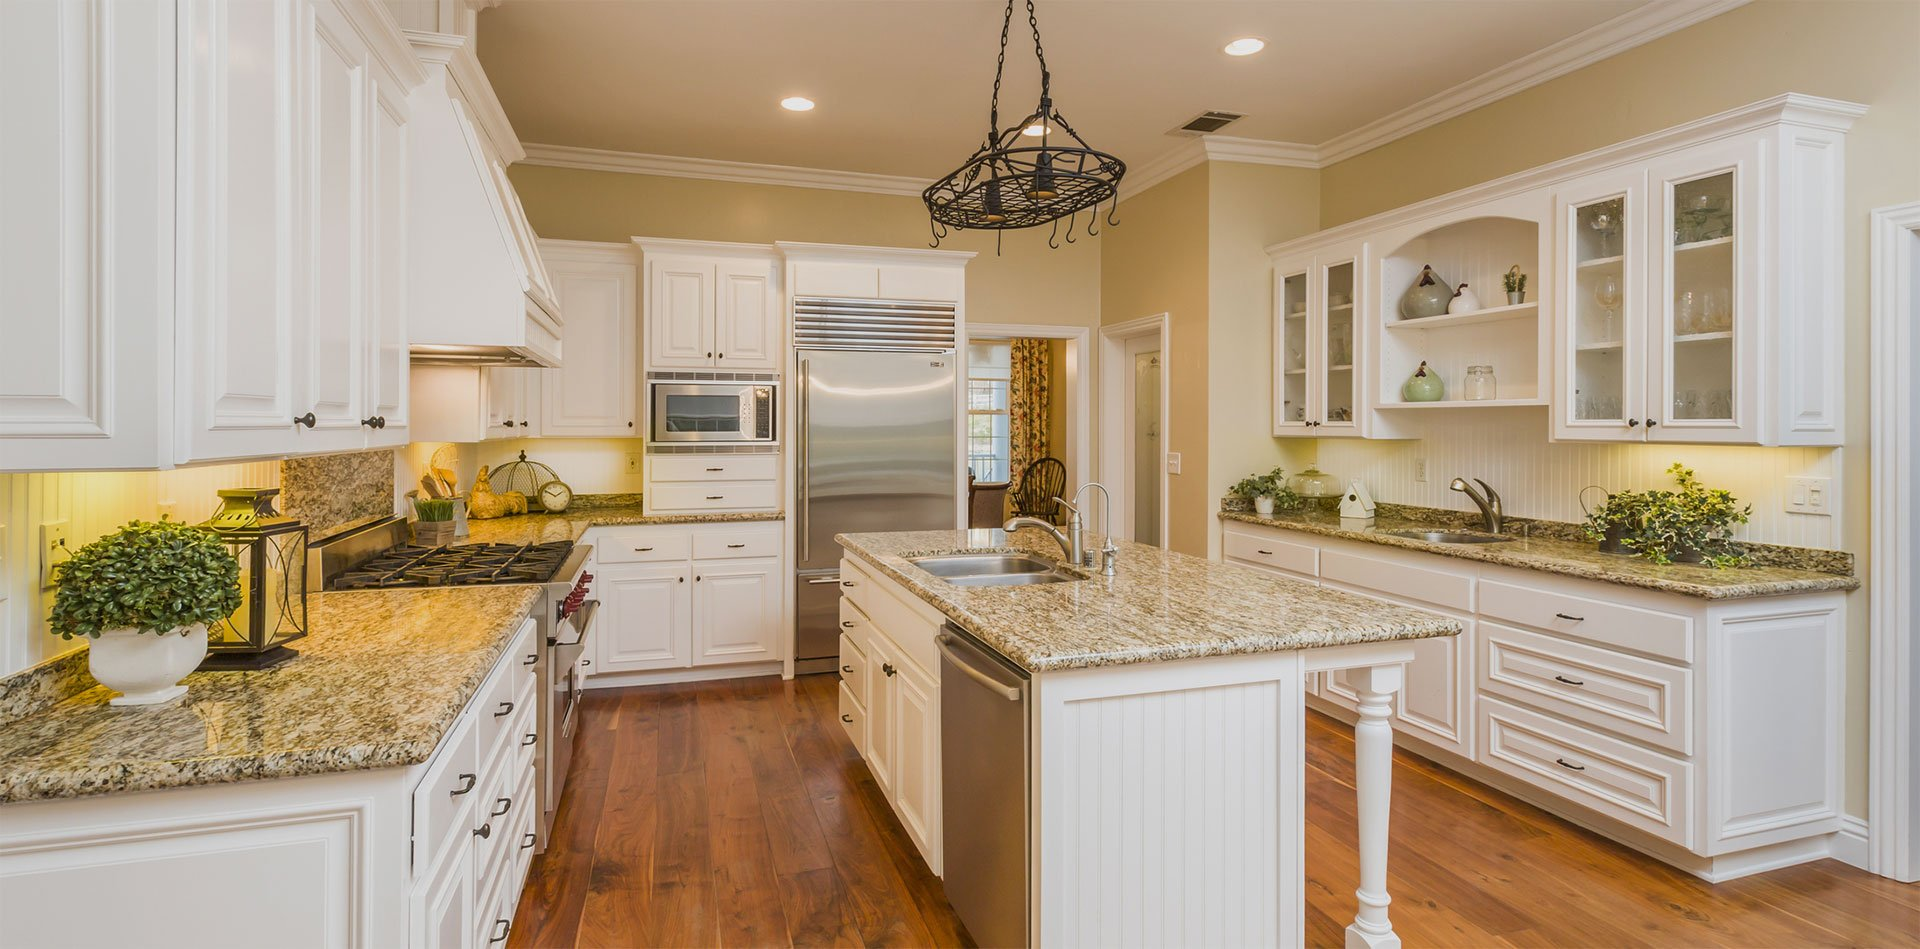 kitchen cabinets stamford ct kitchen cabinets stamford ct image cabinets and shower 6404